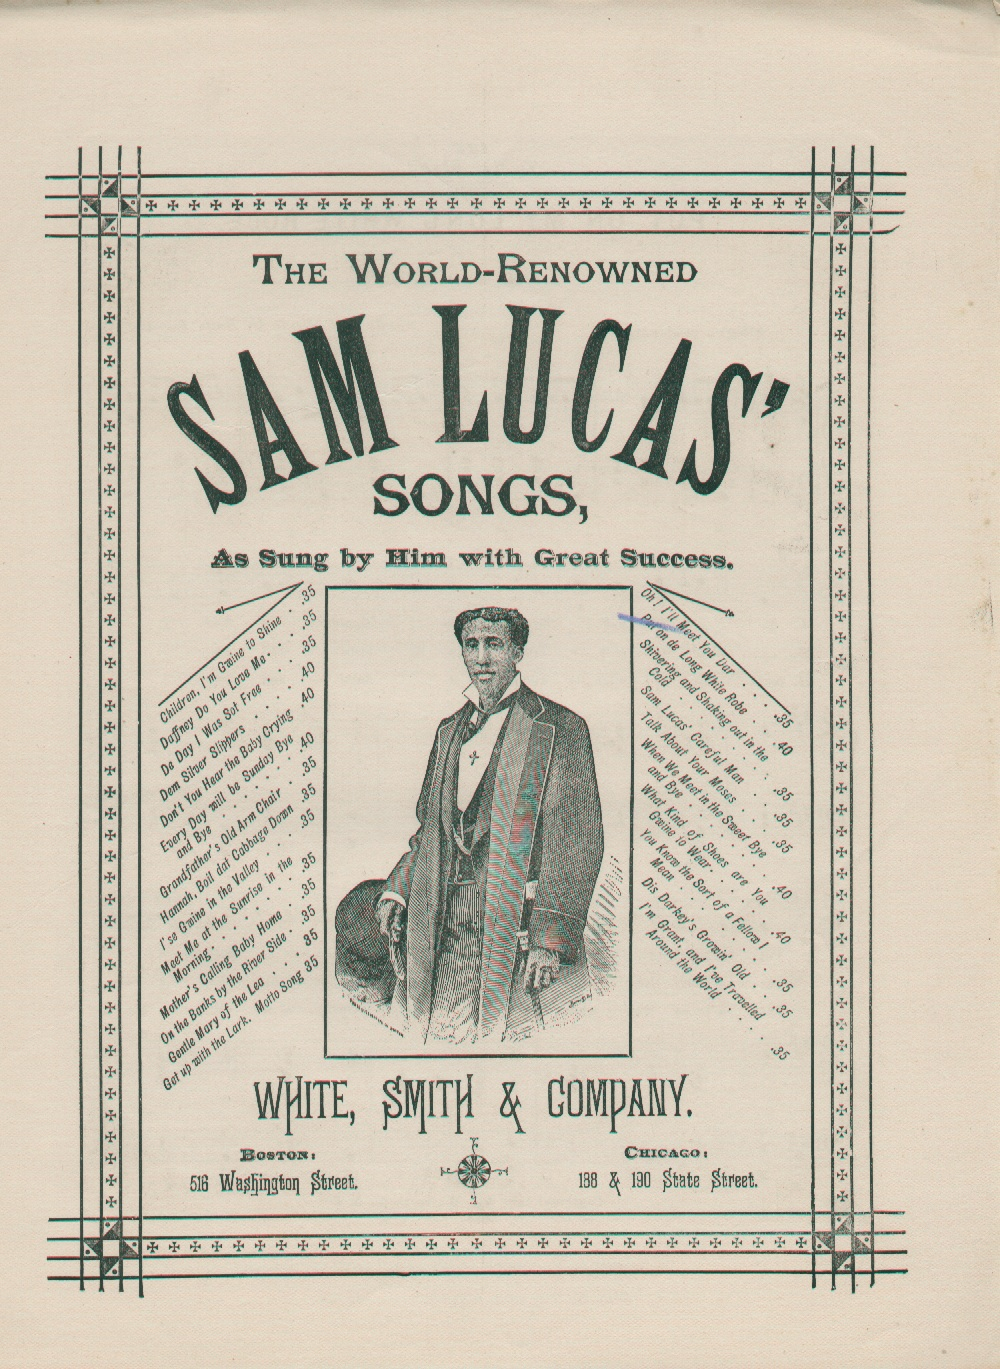 Sam Lucas Songs